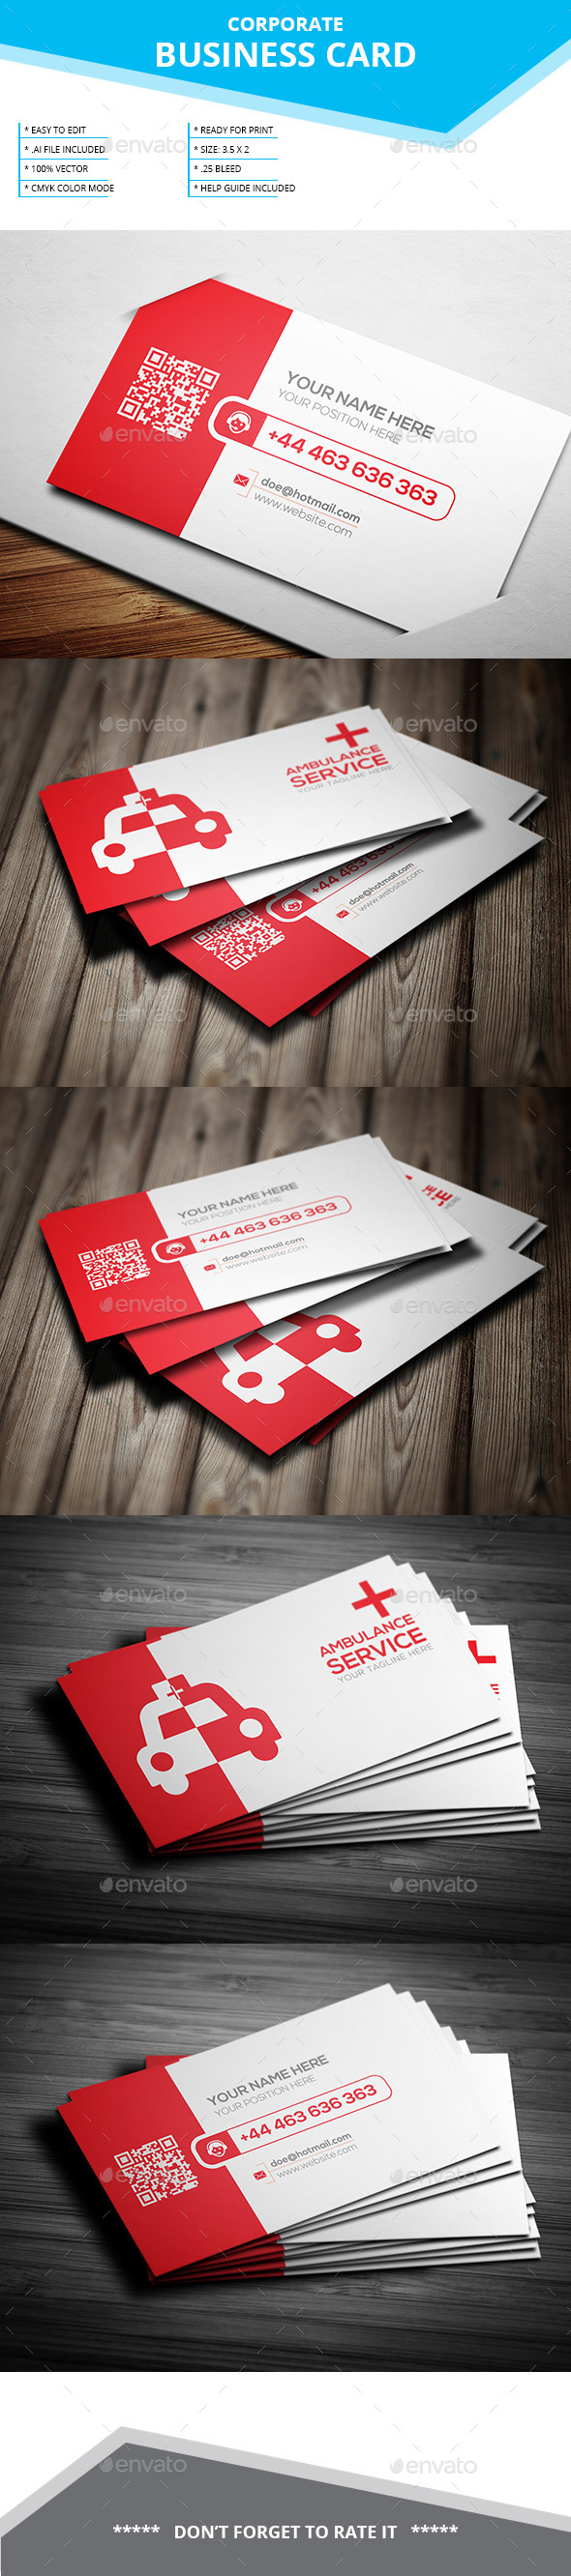 Ambulance Service Business Card  - Business Cards Print Templates